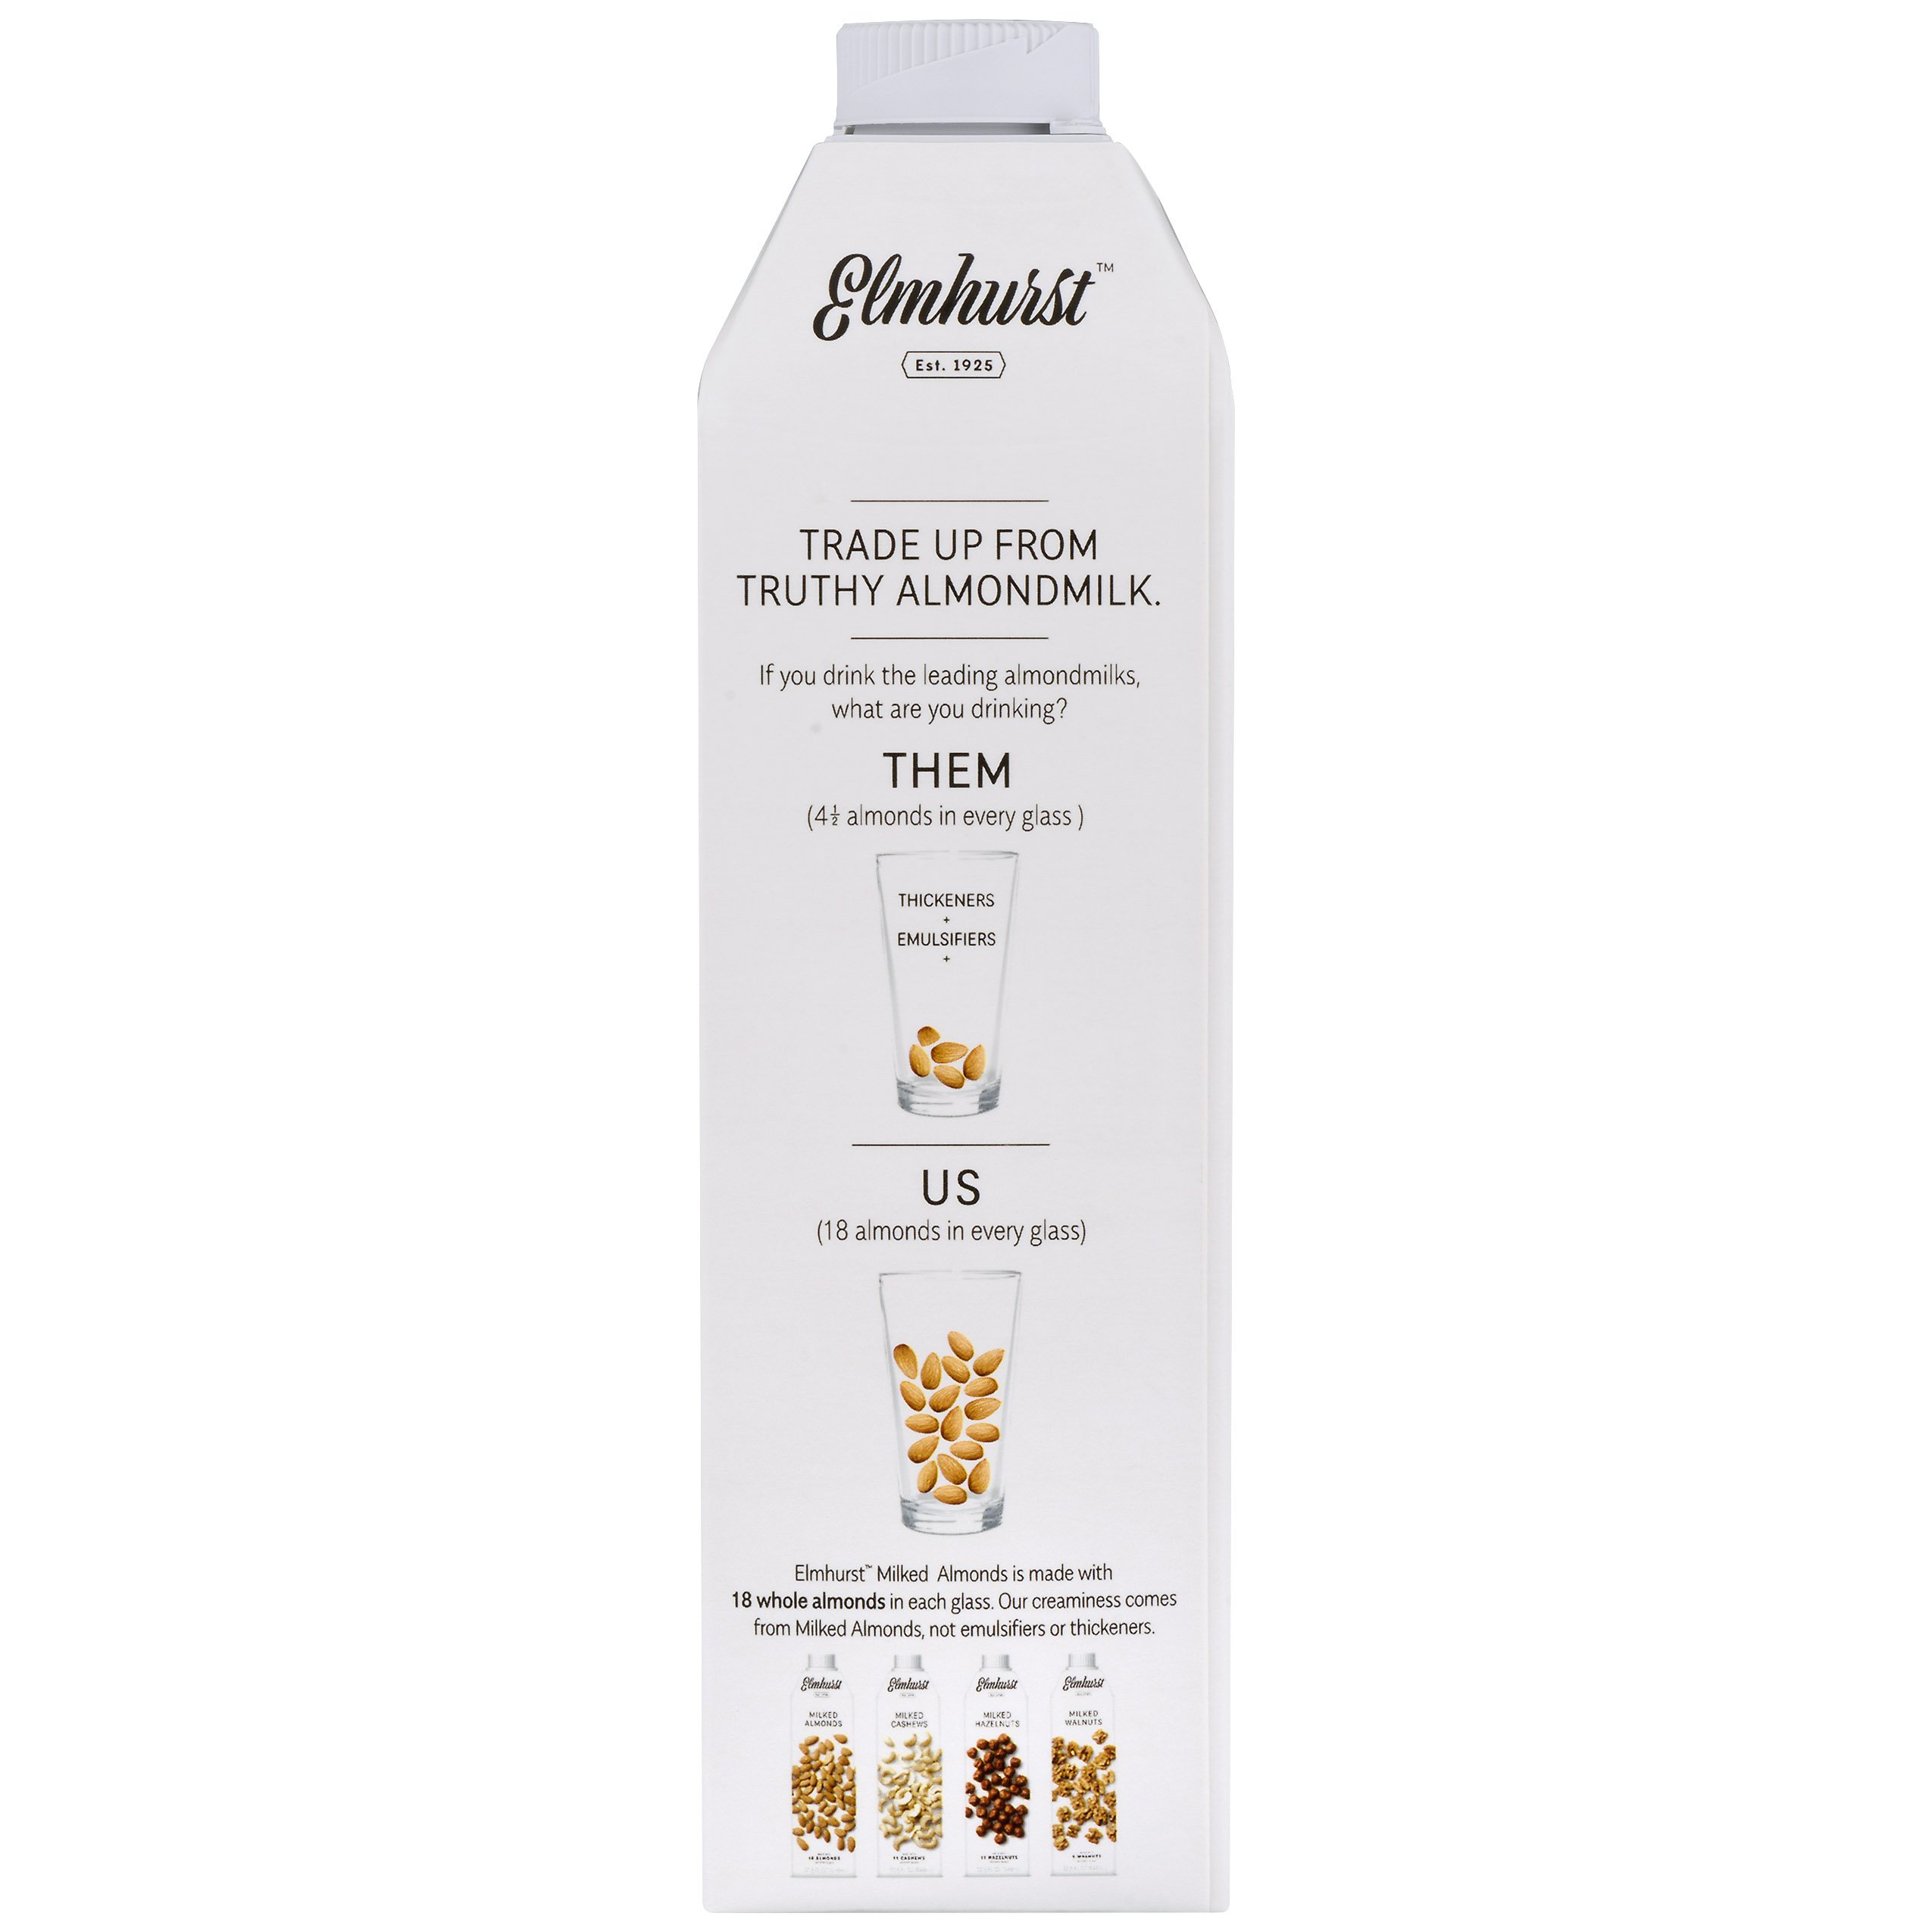 Elmhurst Milked - Almond Milk - 32 Fluid Ounces (Pack of 6) Only 5 Ingredients, 4X the Protein, Non Dairy, Keto Friendly, No Added Gums or Emulsifiers, Vegan by Elmhurst (Image #7)